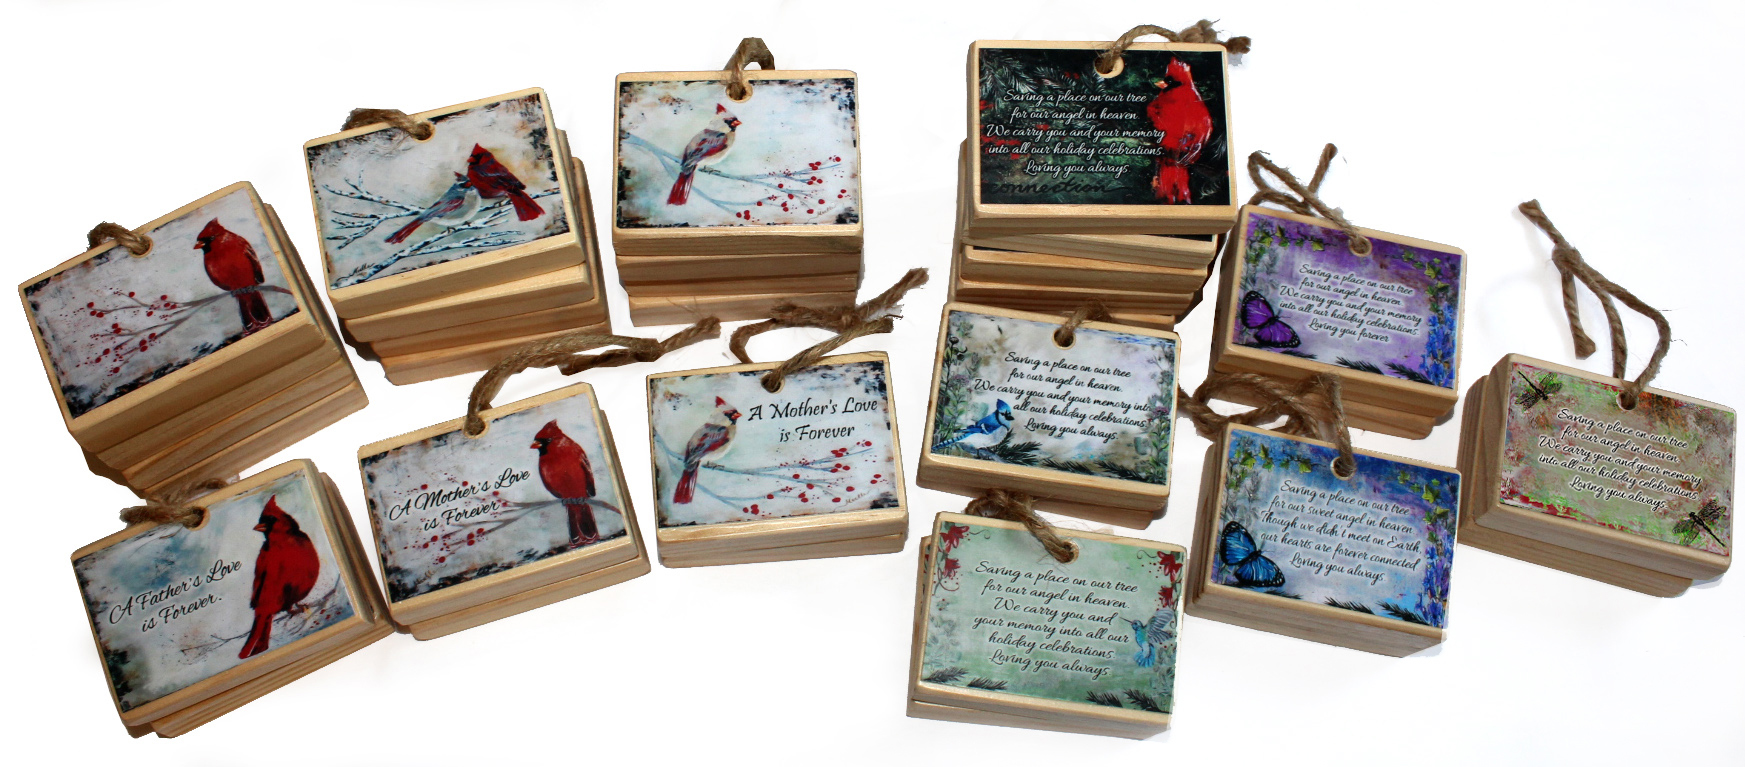 Hummingbird remembrance Christmas ornament memorial gift